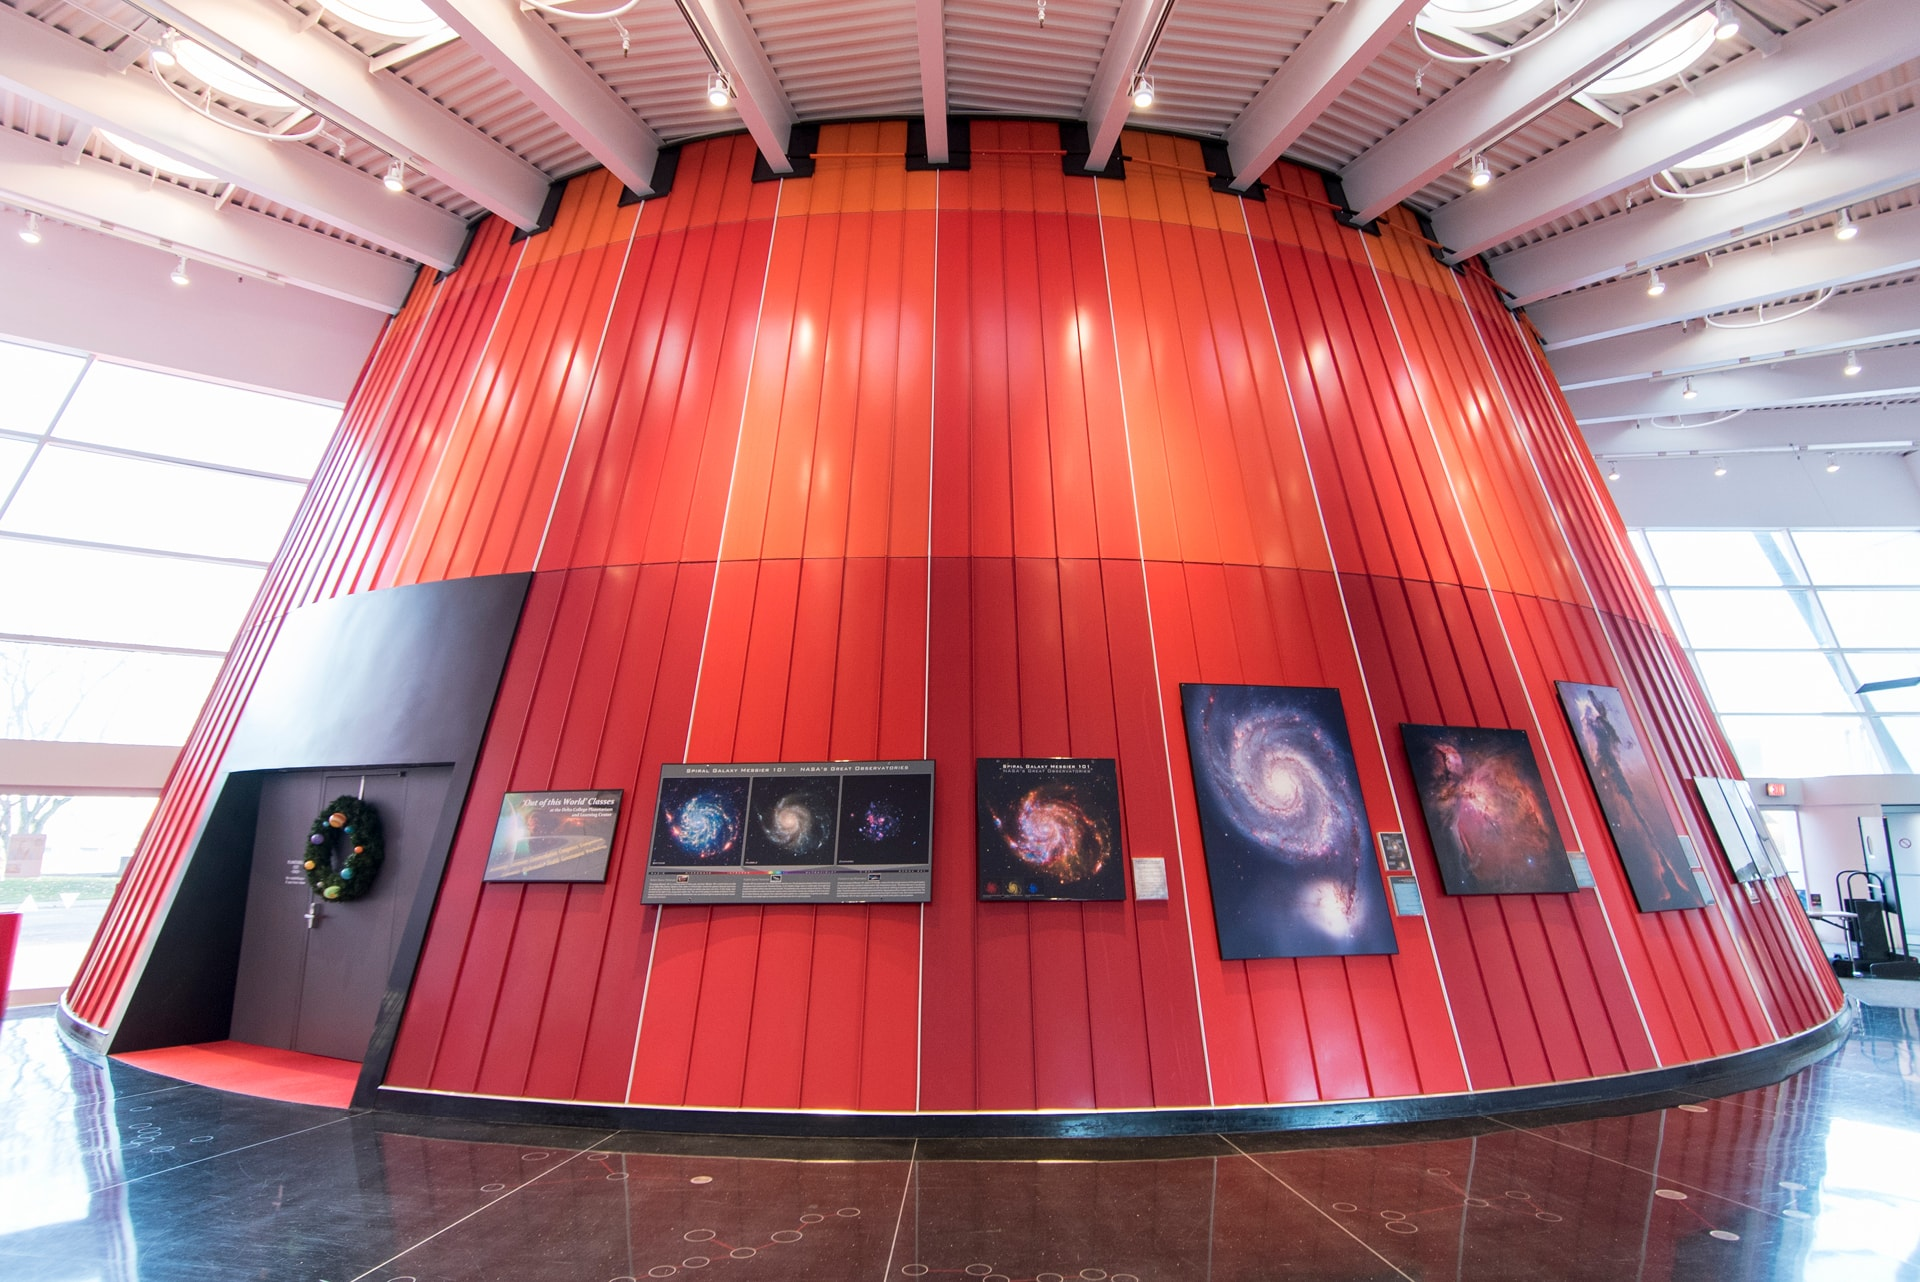 The Downtown Bay City Center includes a state-of-the-art planetarium.